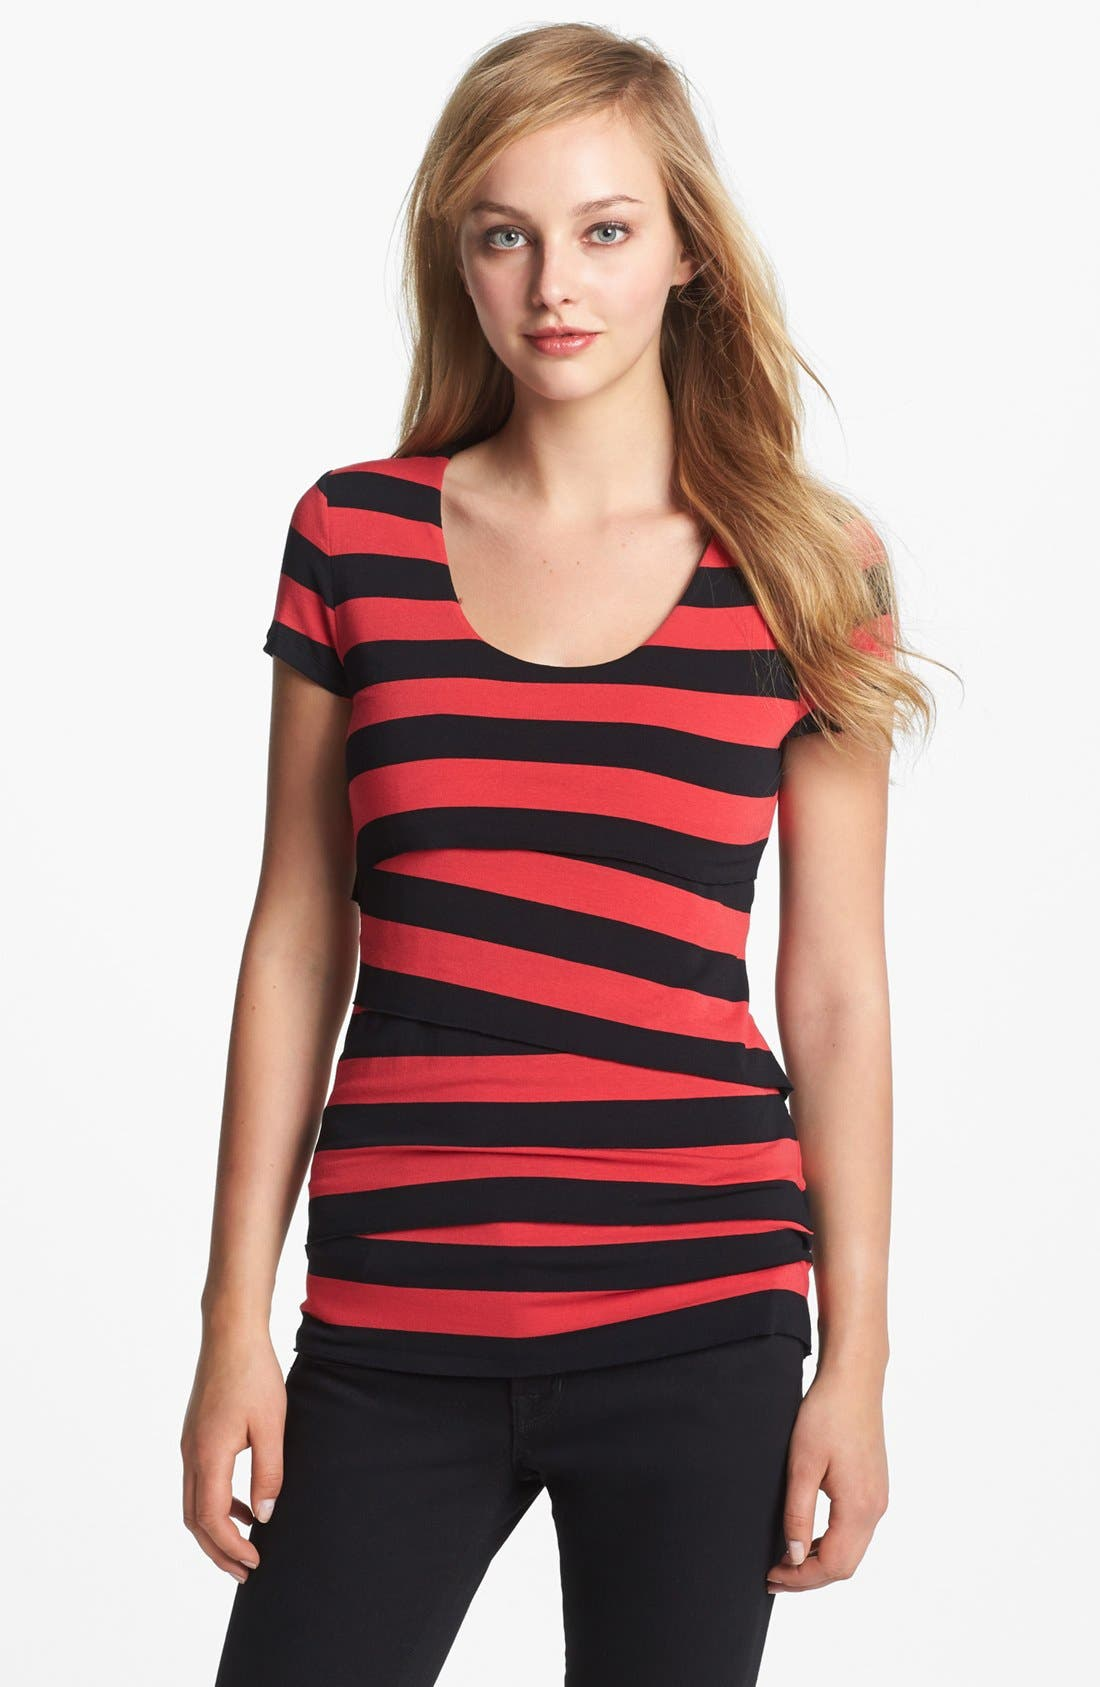 Alternate Image 1 Selected - Vince Camuto Stripe Bandage Top